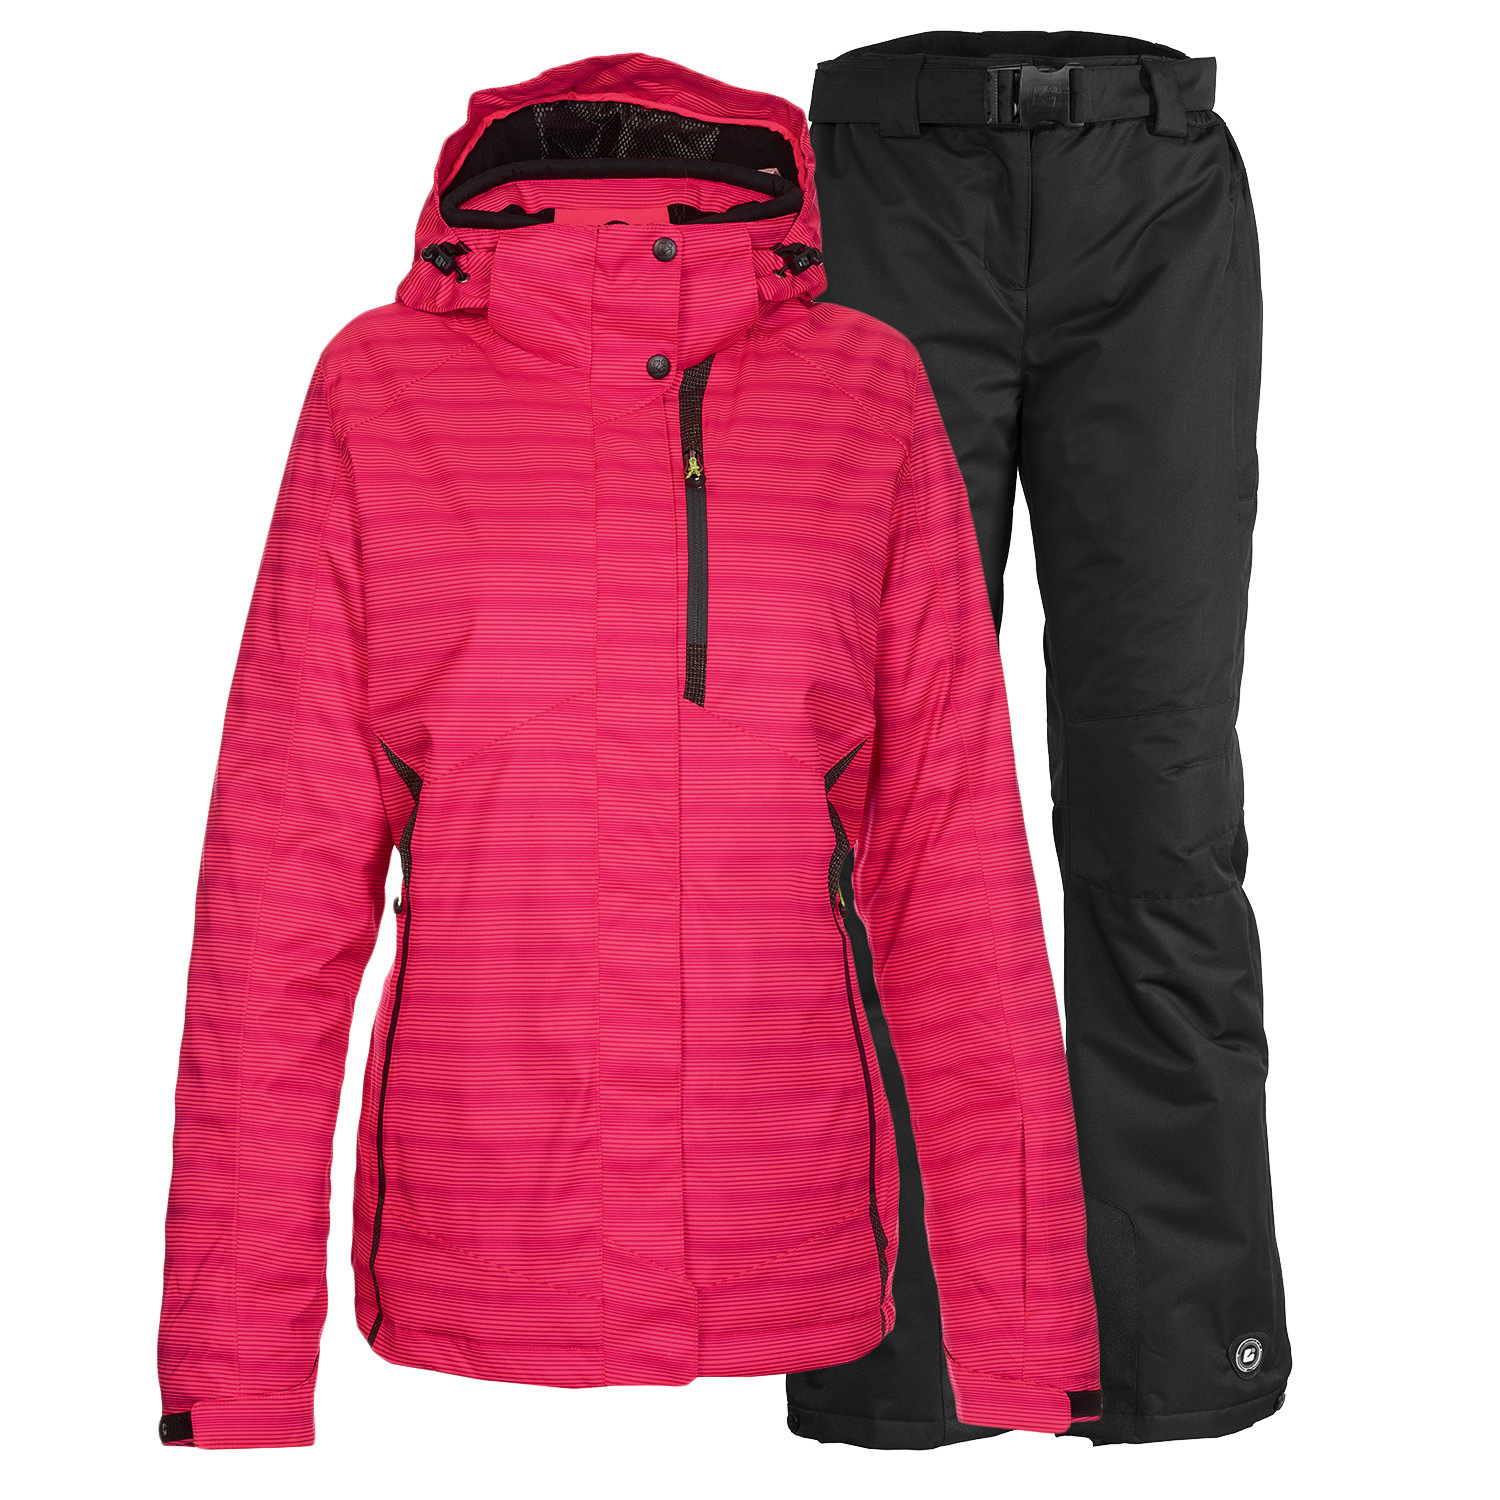 skiset skianzug level 3 damen funktionsjacke pink alpin skihose schwarz gr e ebay. Black Bedroom Furniture Sets. Home Design Ideas